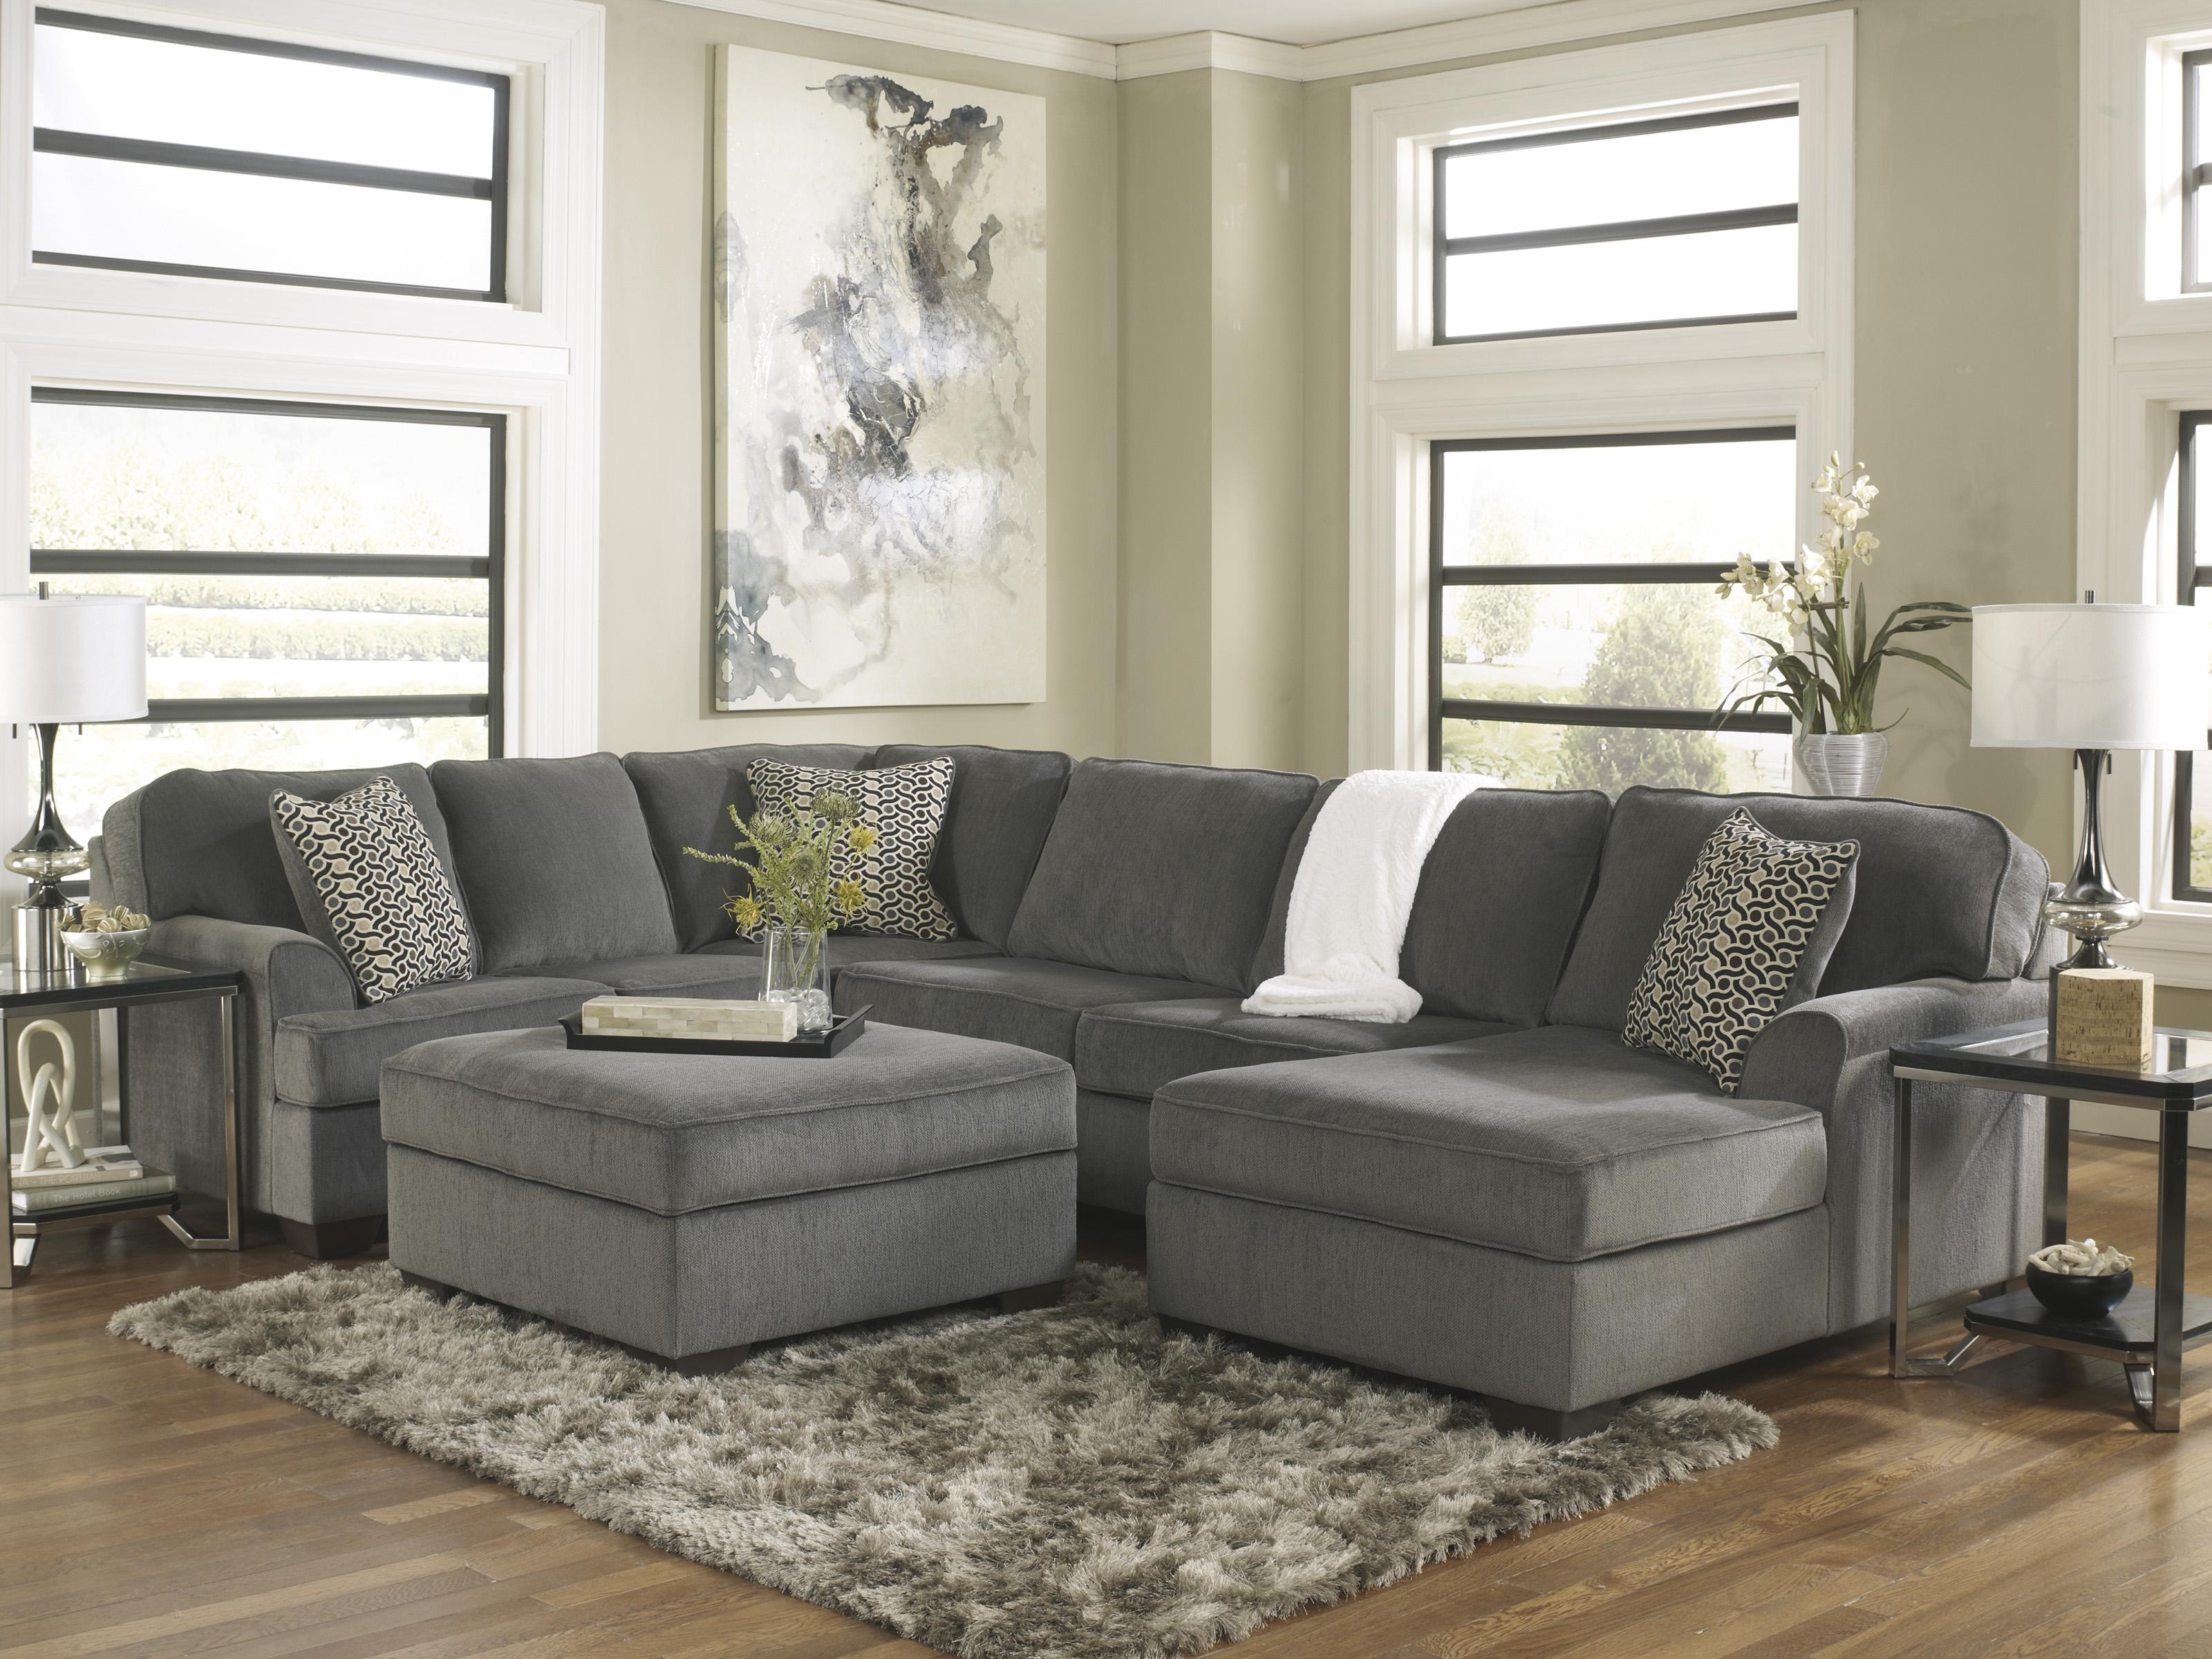 Furniture Bedroom Sets Besides Concept Drawings On Albany Furniture